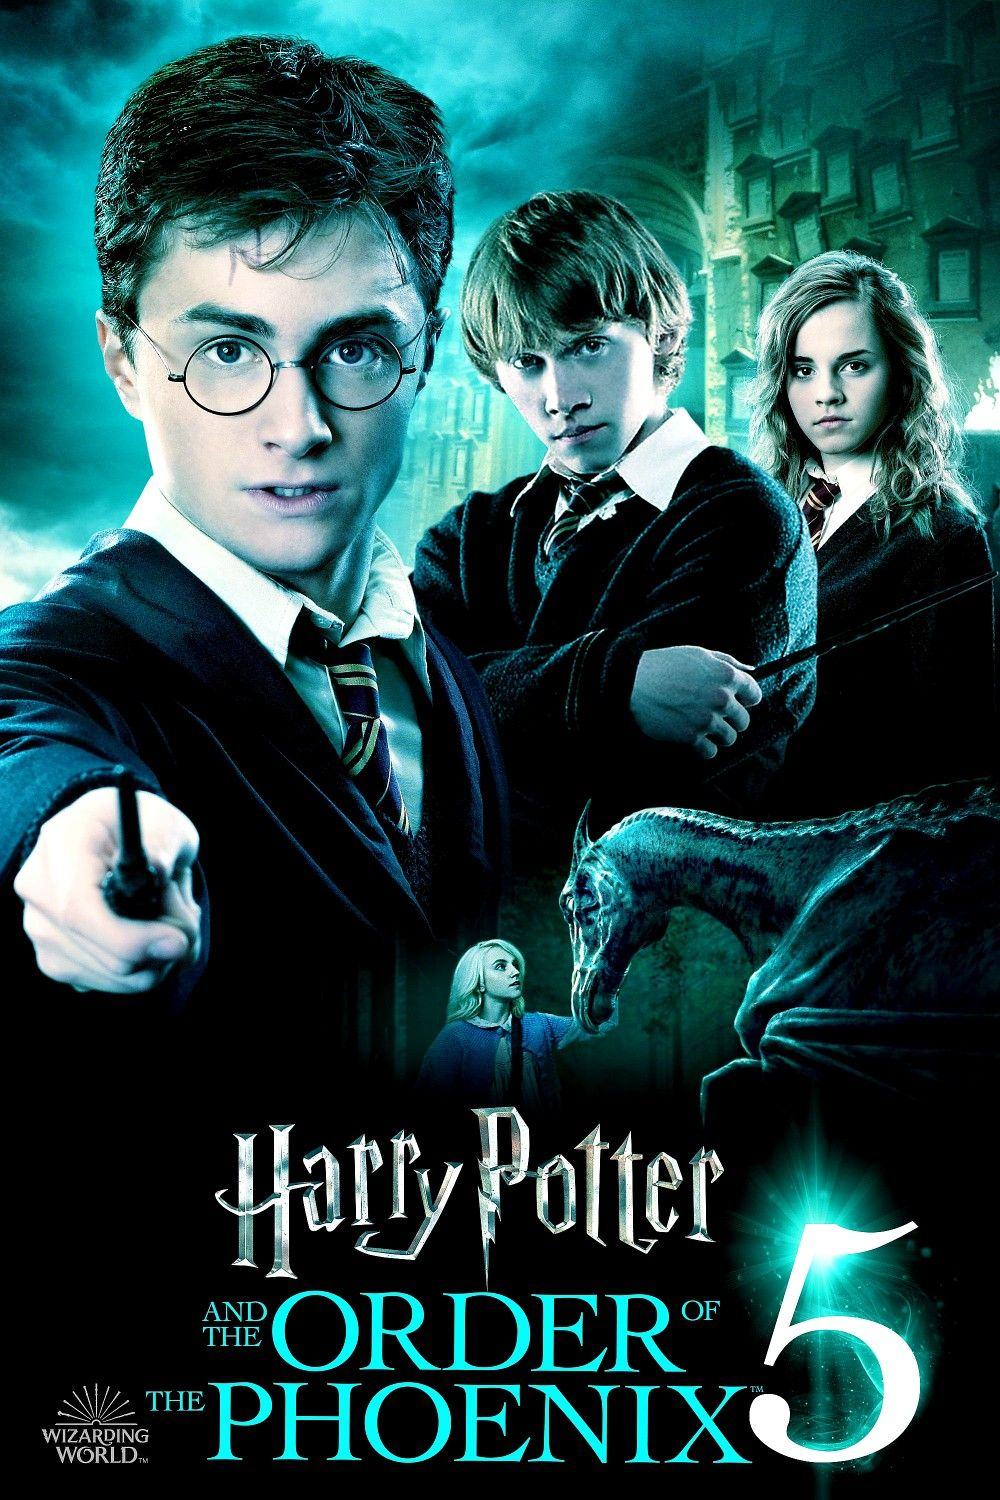 Pin By Keely Murphy On Hogwarts Harry Potter Harry Potter Movie Posters Harry Potter Movies Harry Potter Actors